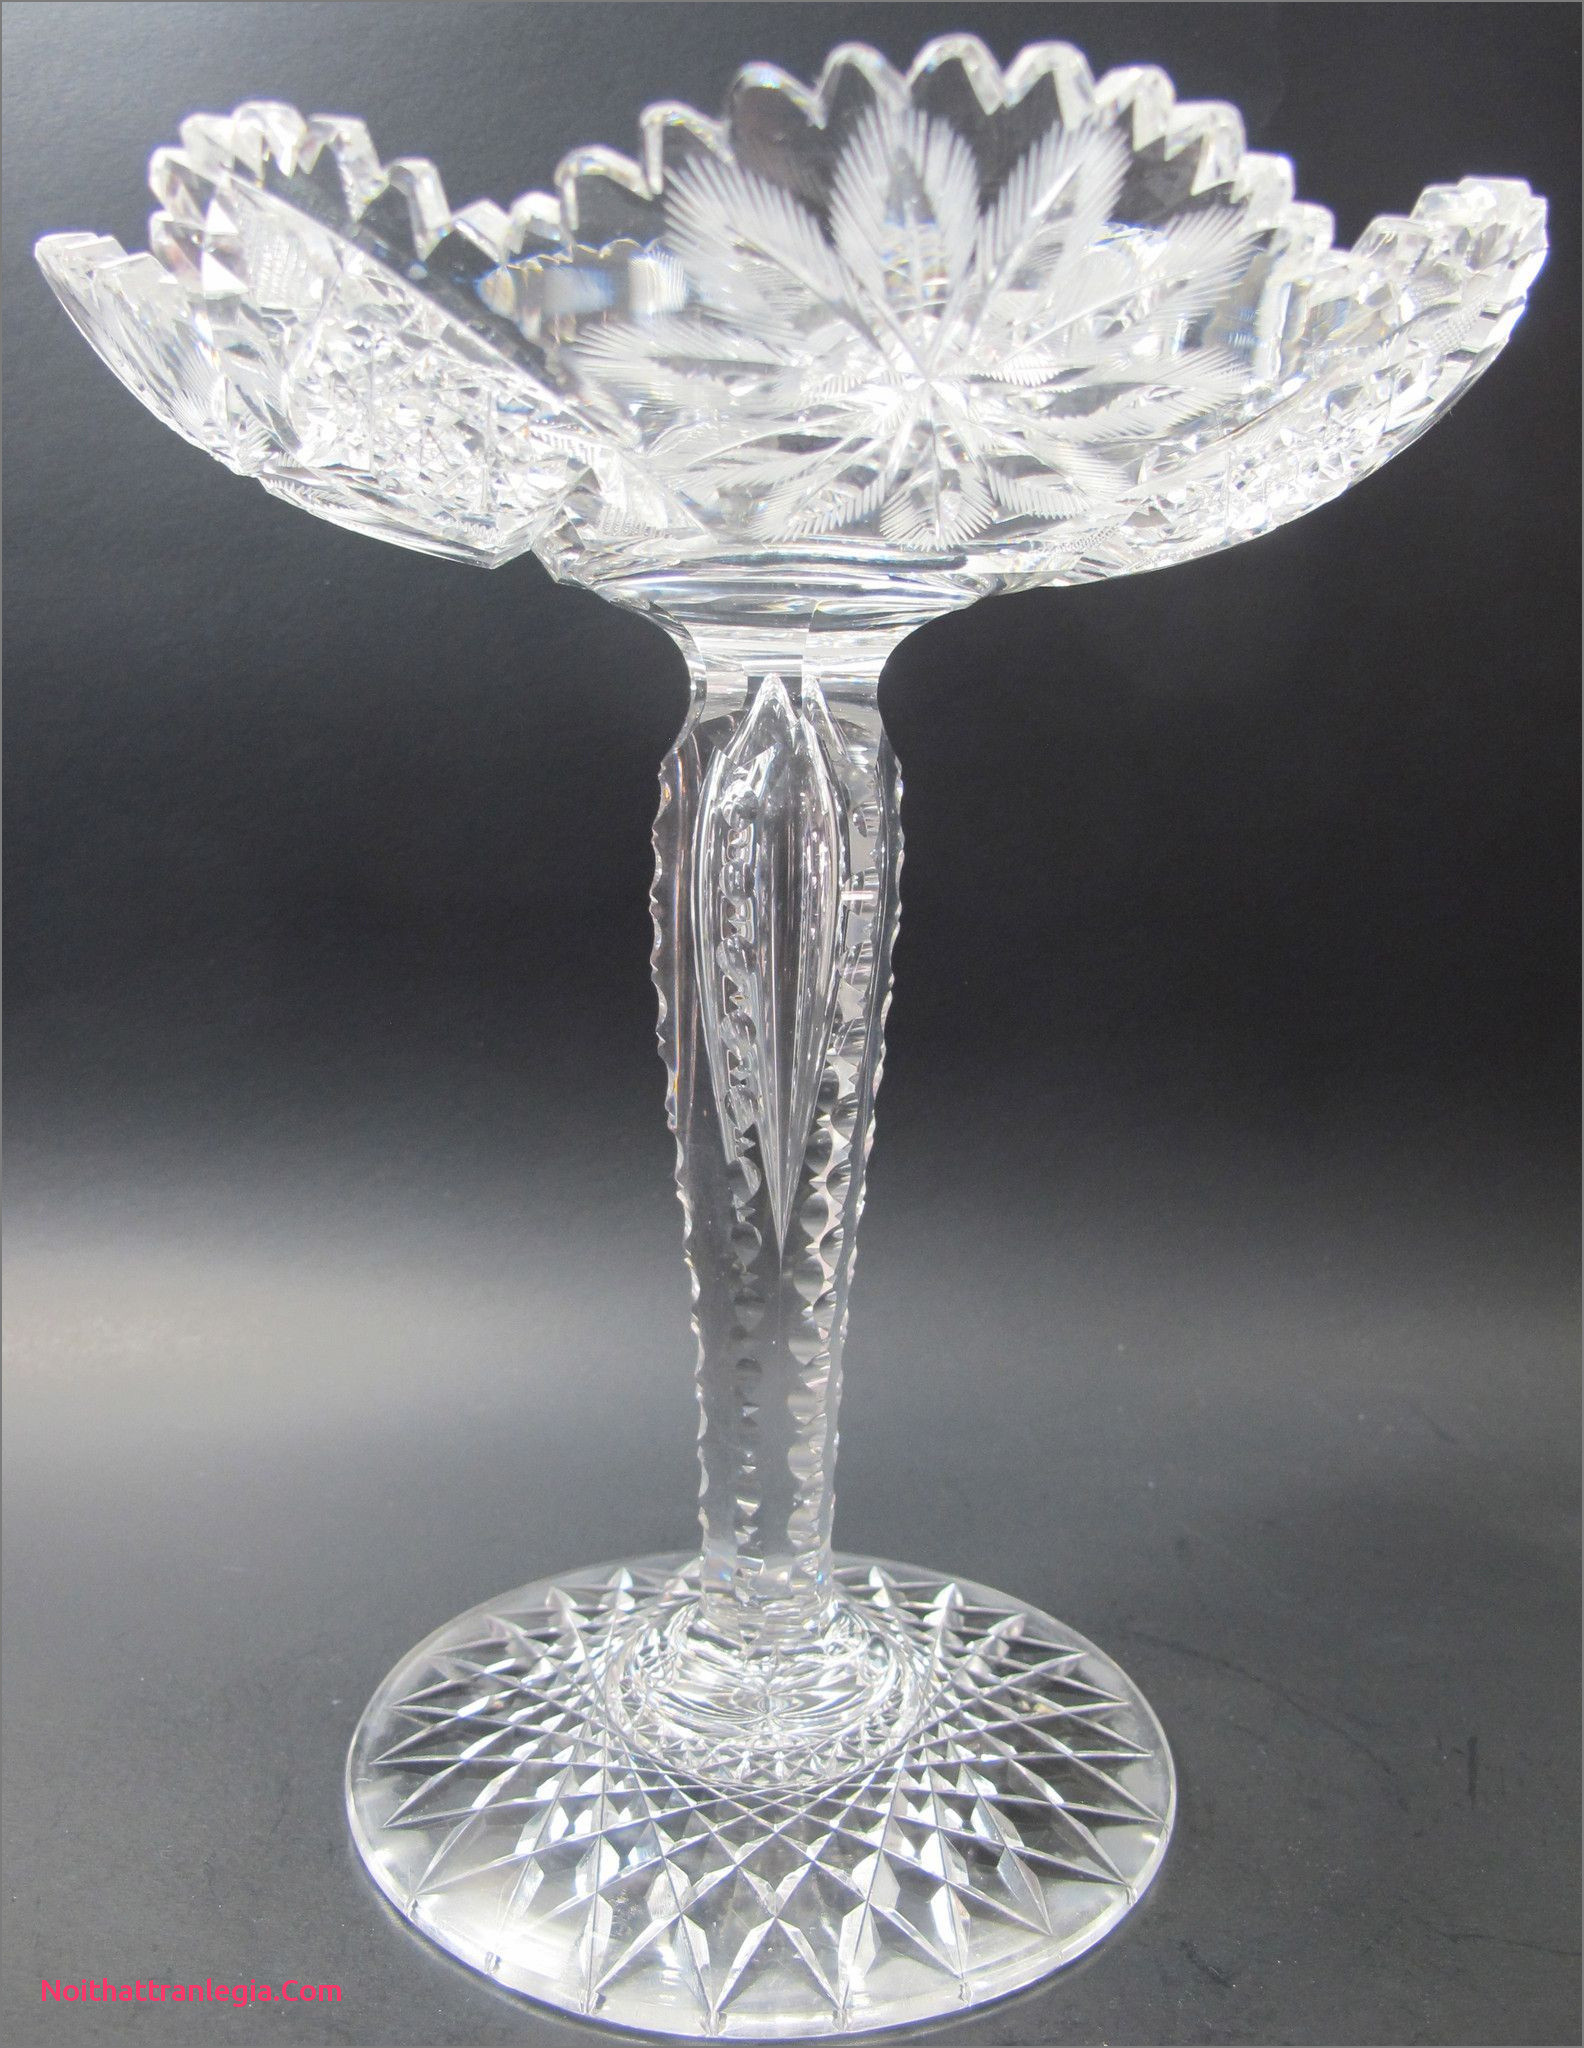 silver pedestal vase of 20 cut glass antique vase noithattranlegia vases design intended for fering this abp antique cut glass pote from the american brilliant period 1886 1916 9 5